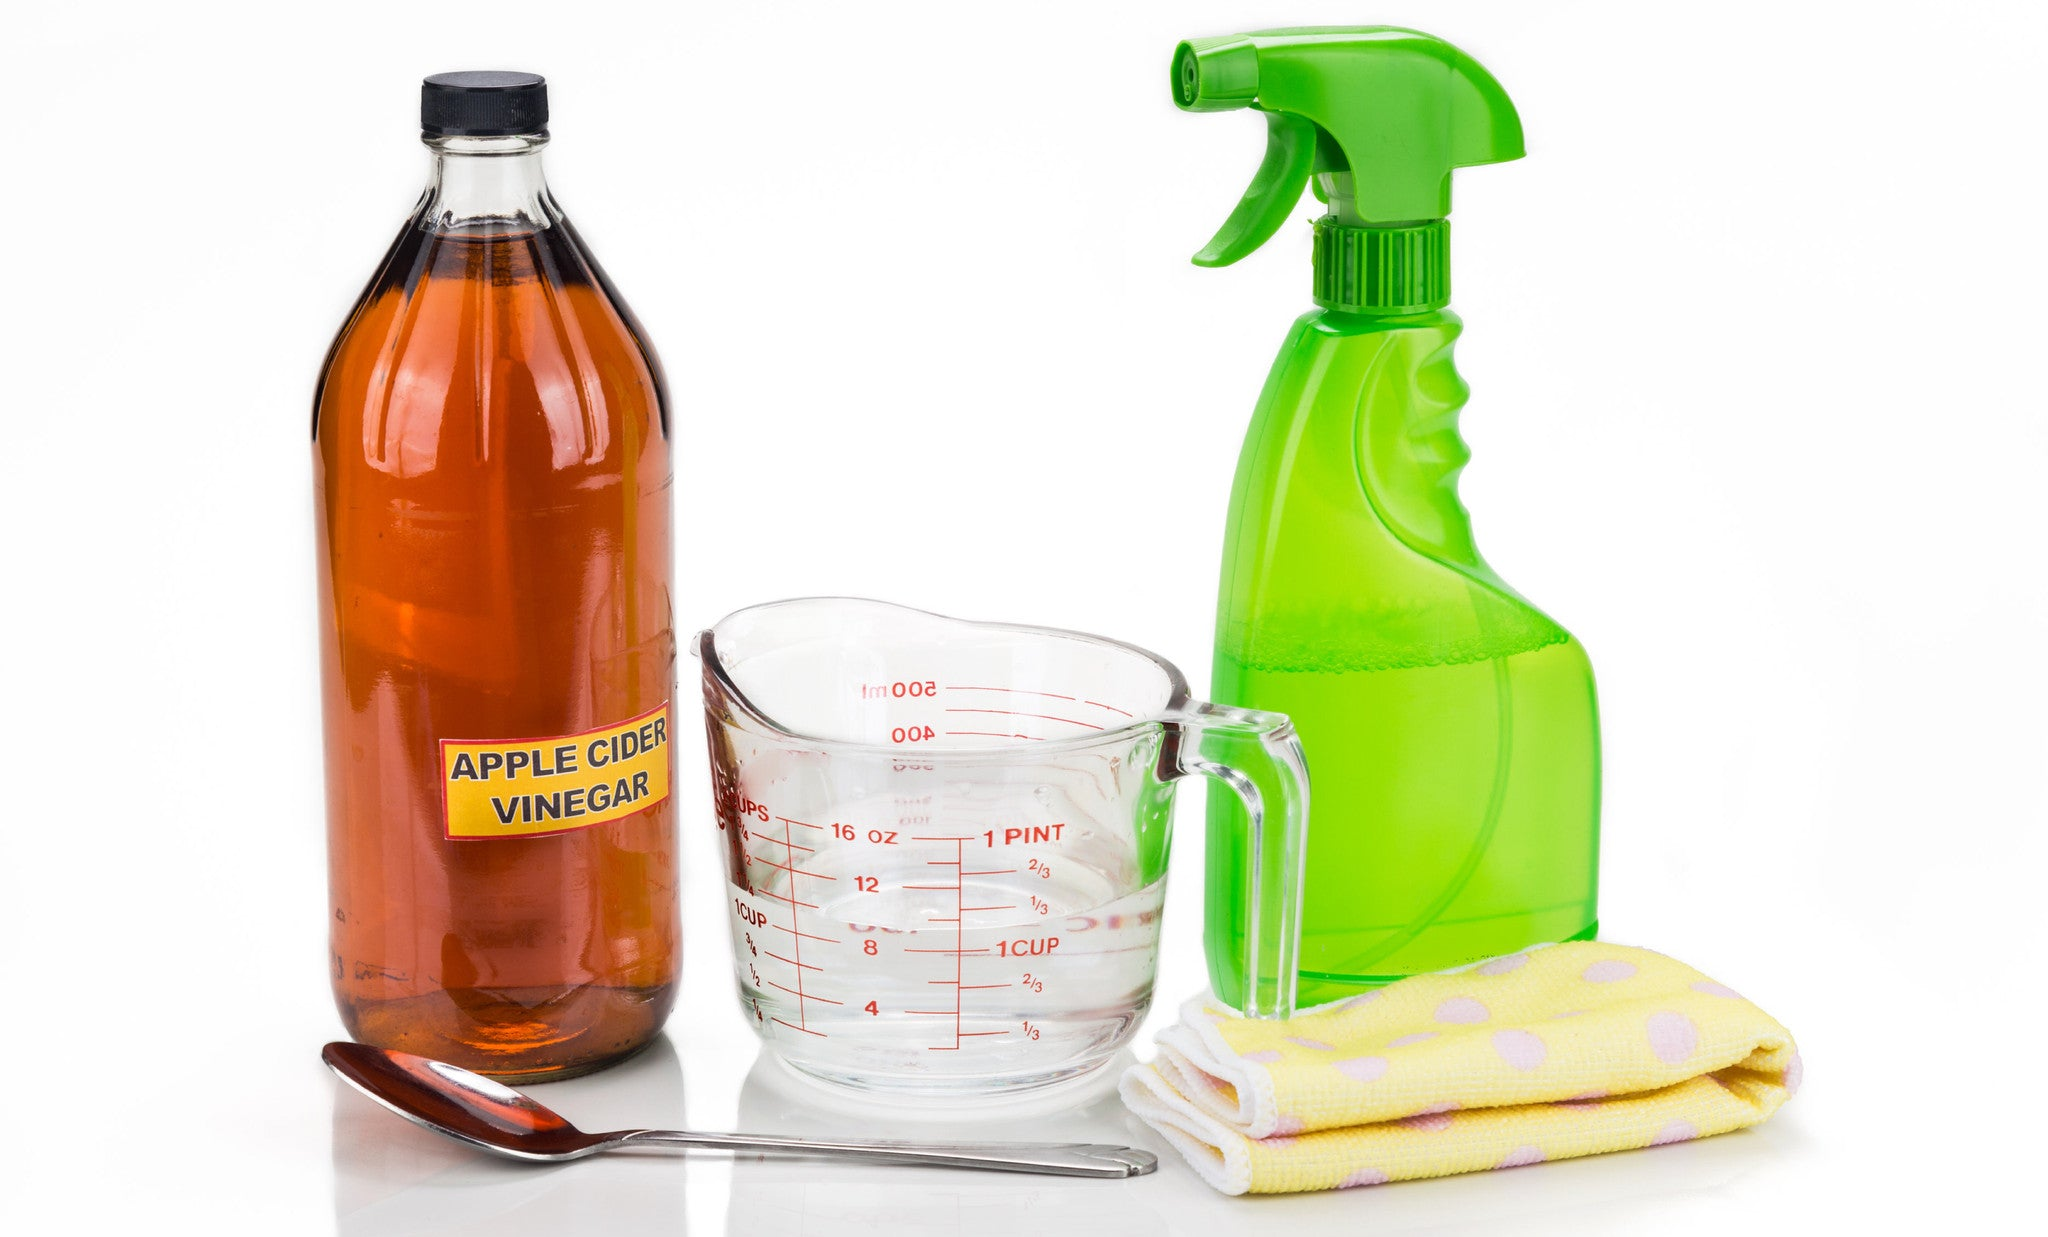 Apple Cider Vinegar for cleaning